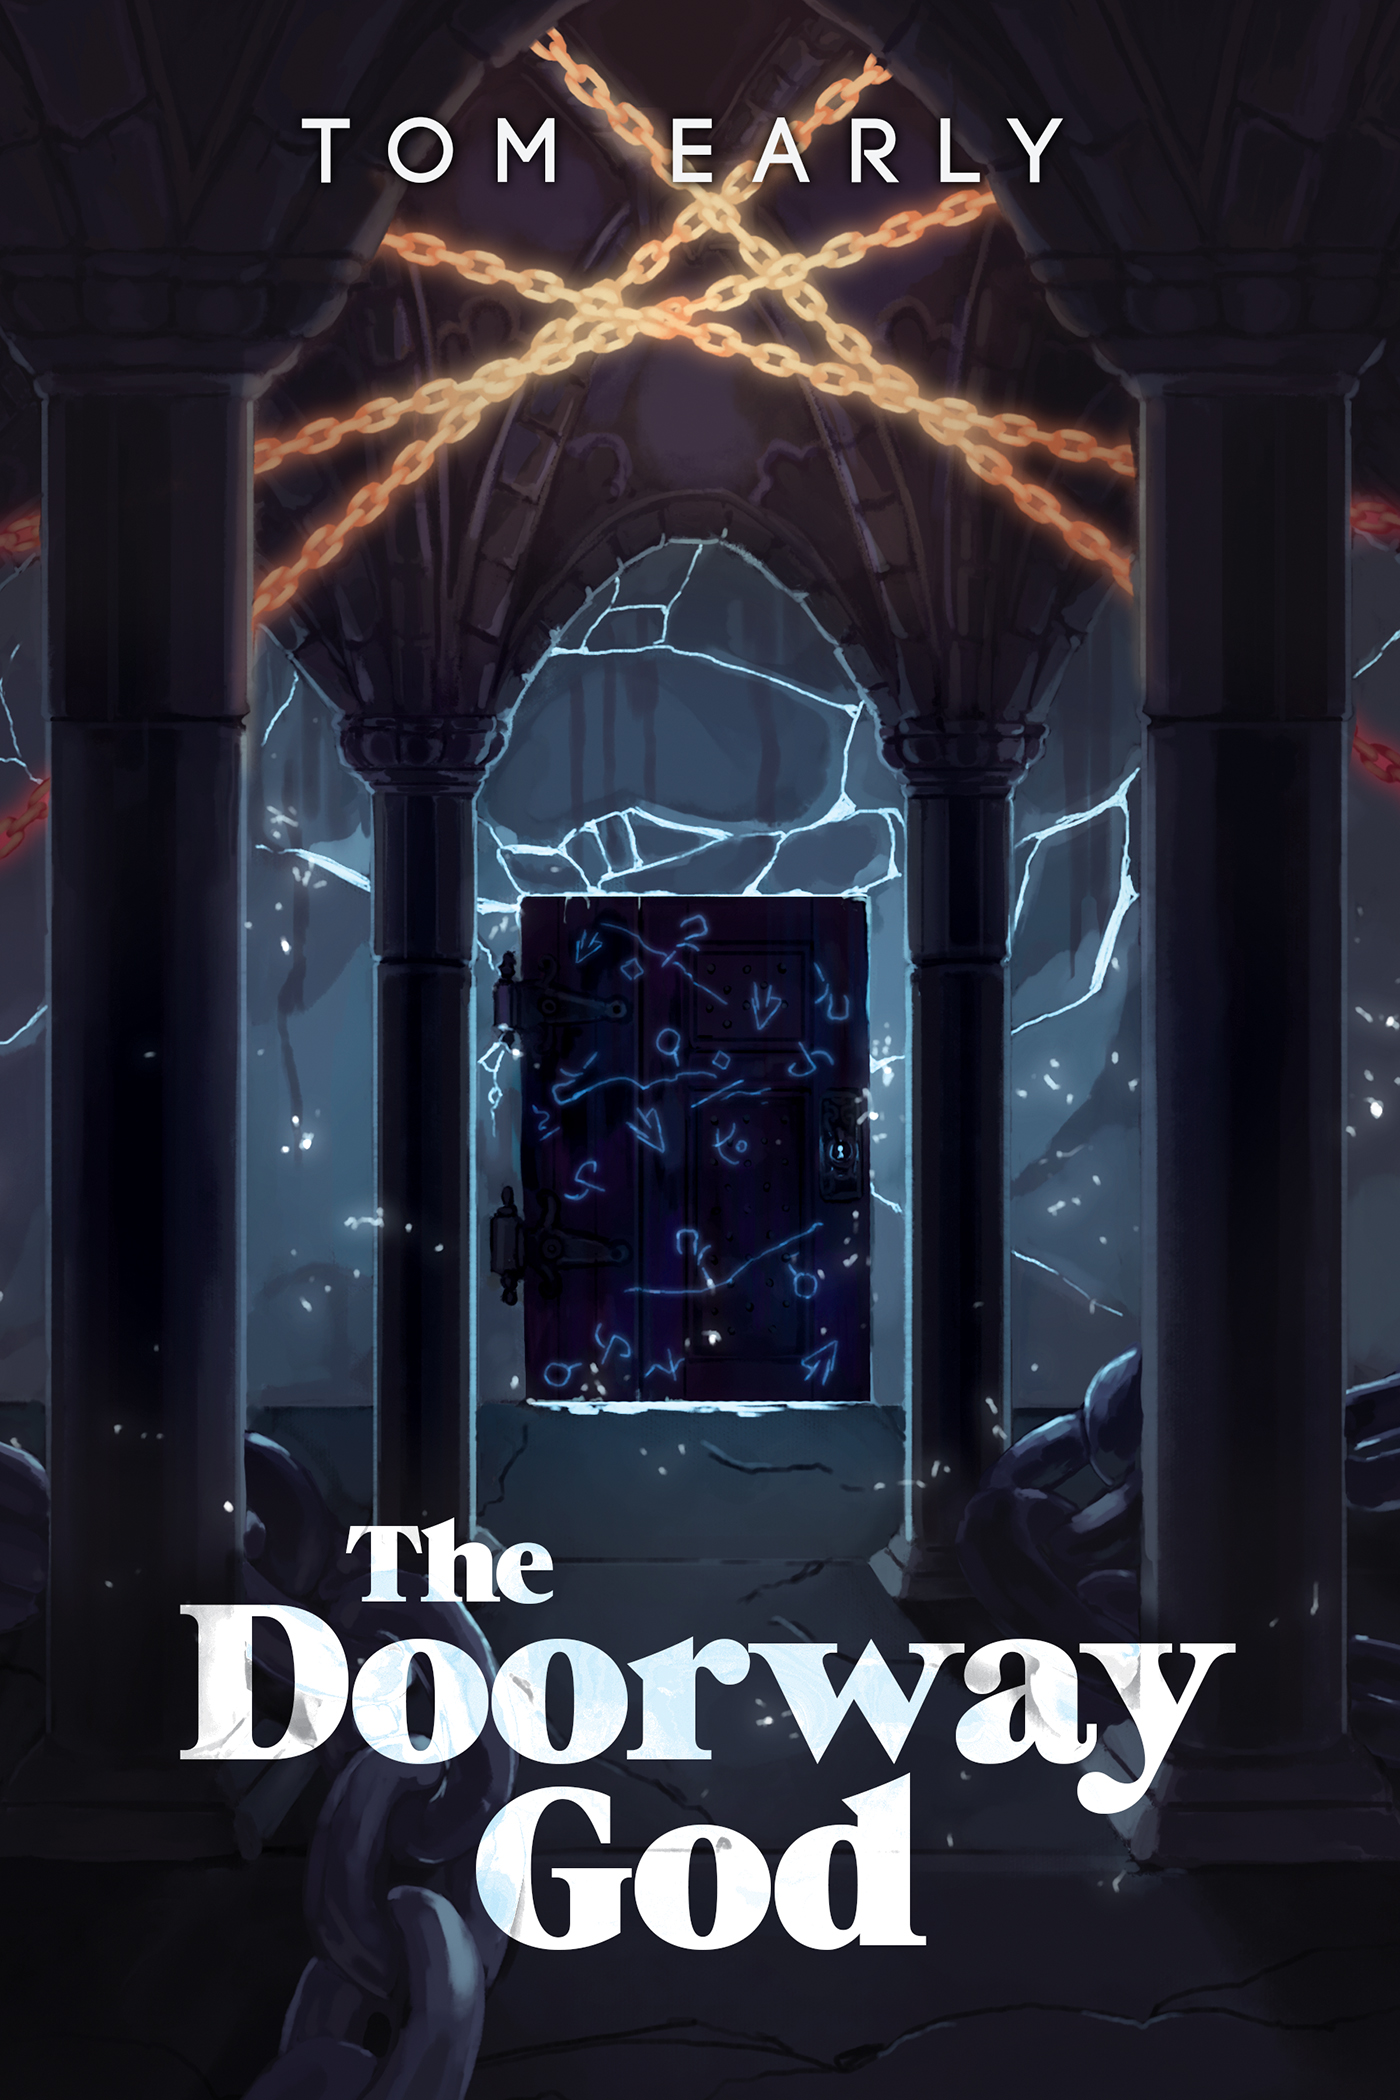 The Doorway God